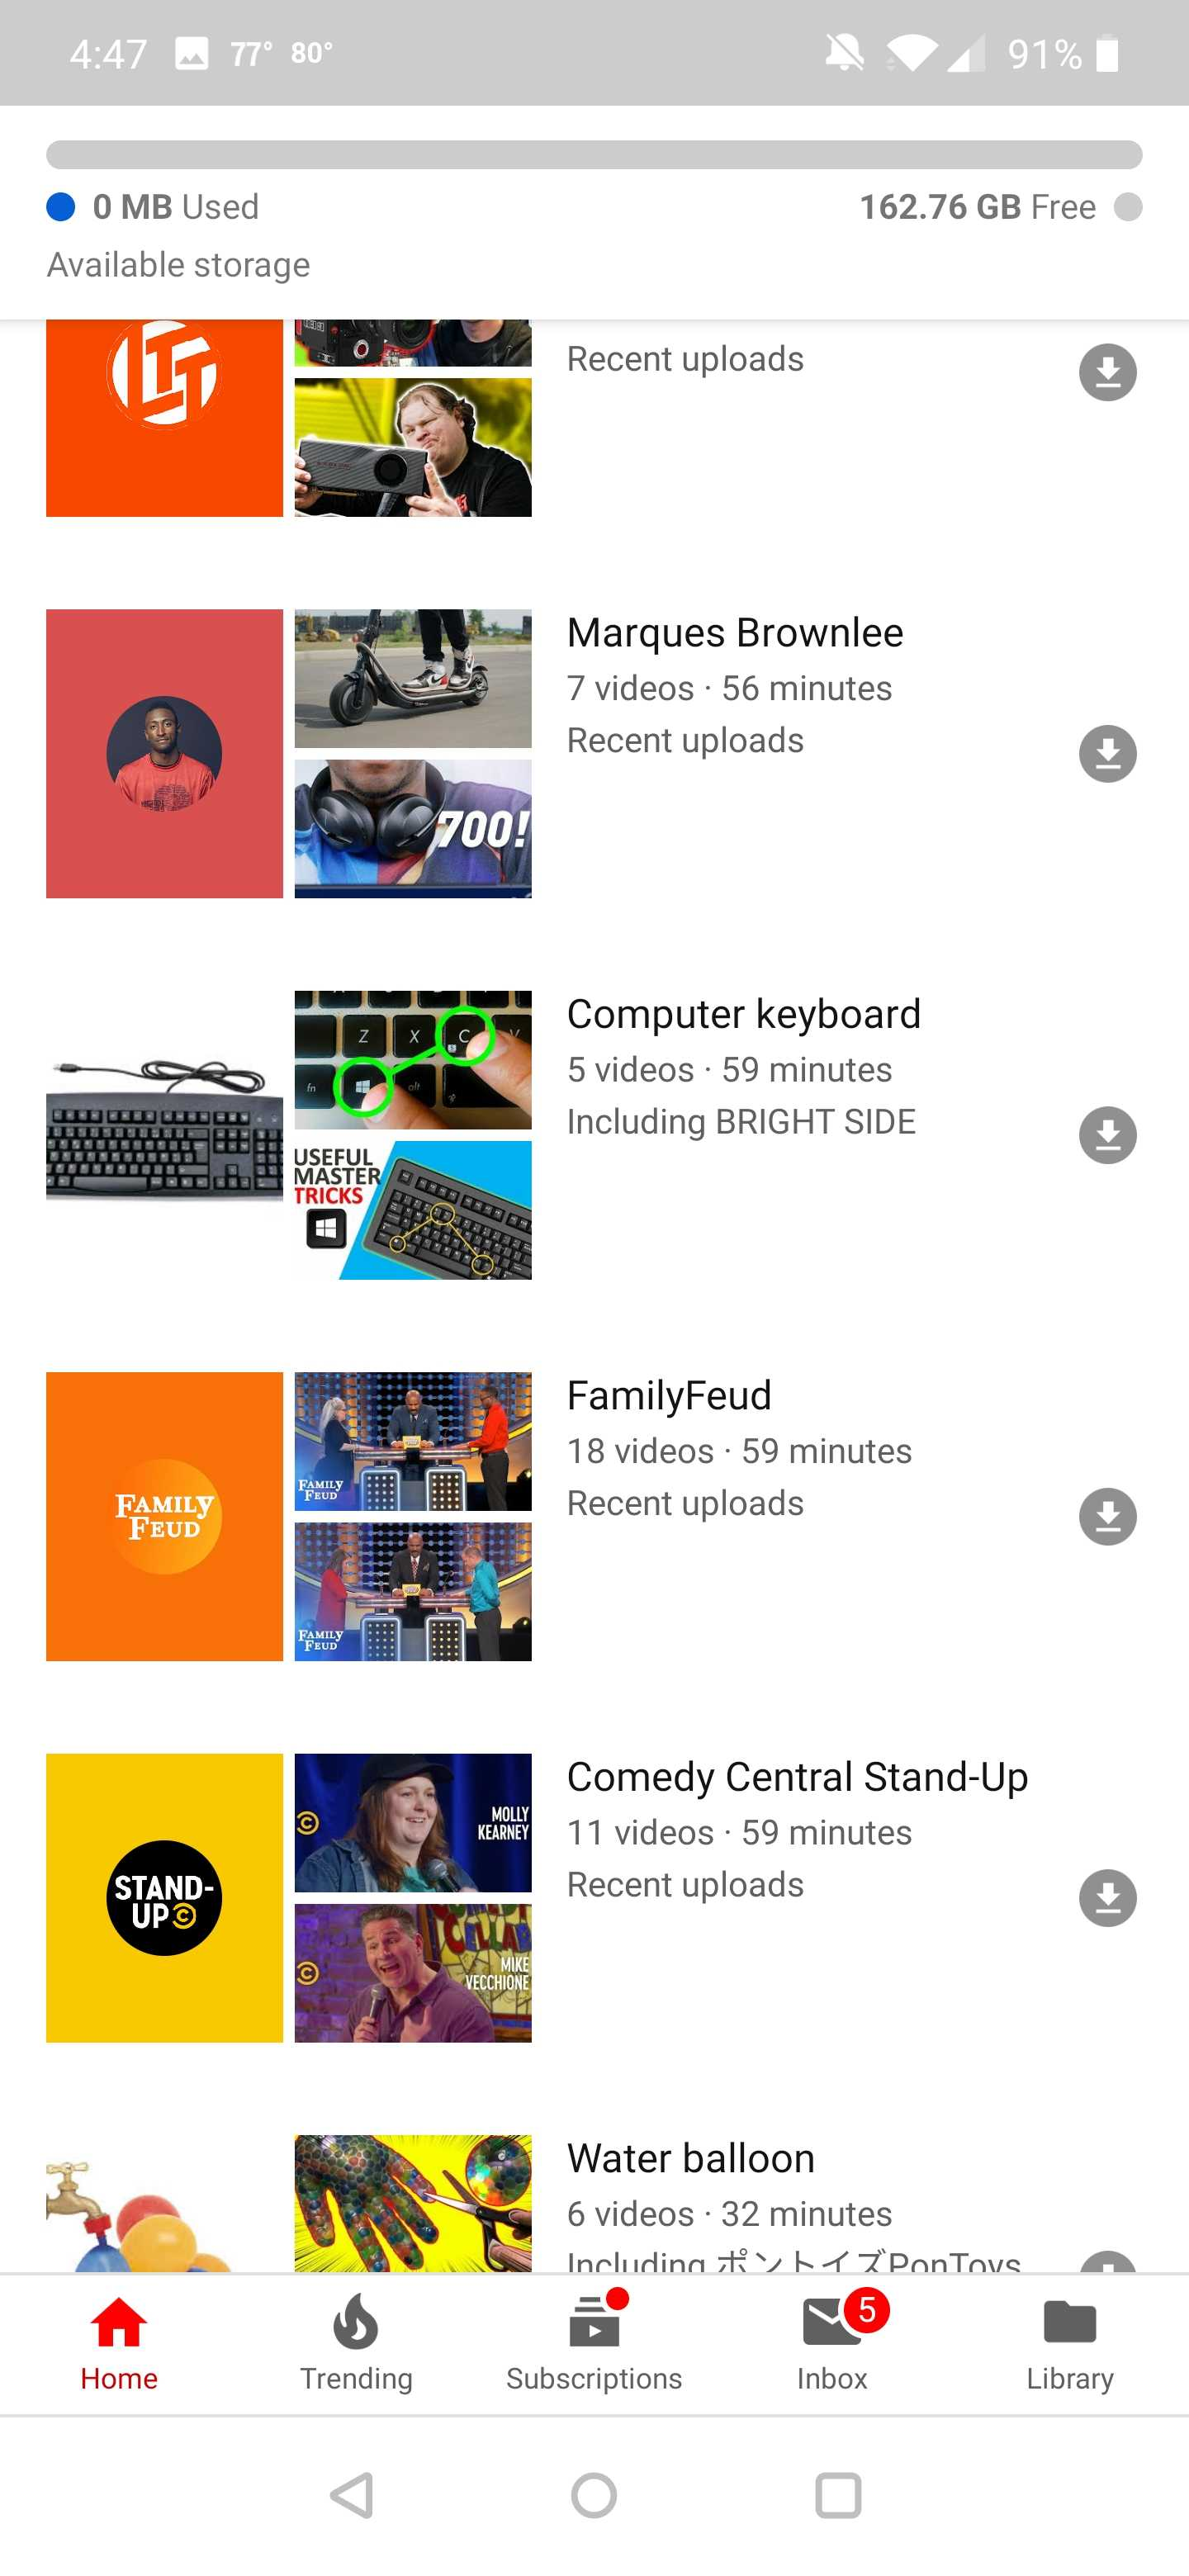 YouTube Premium lets you save recent channel and topic